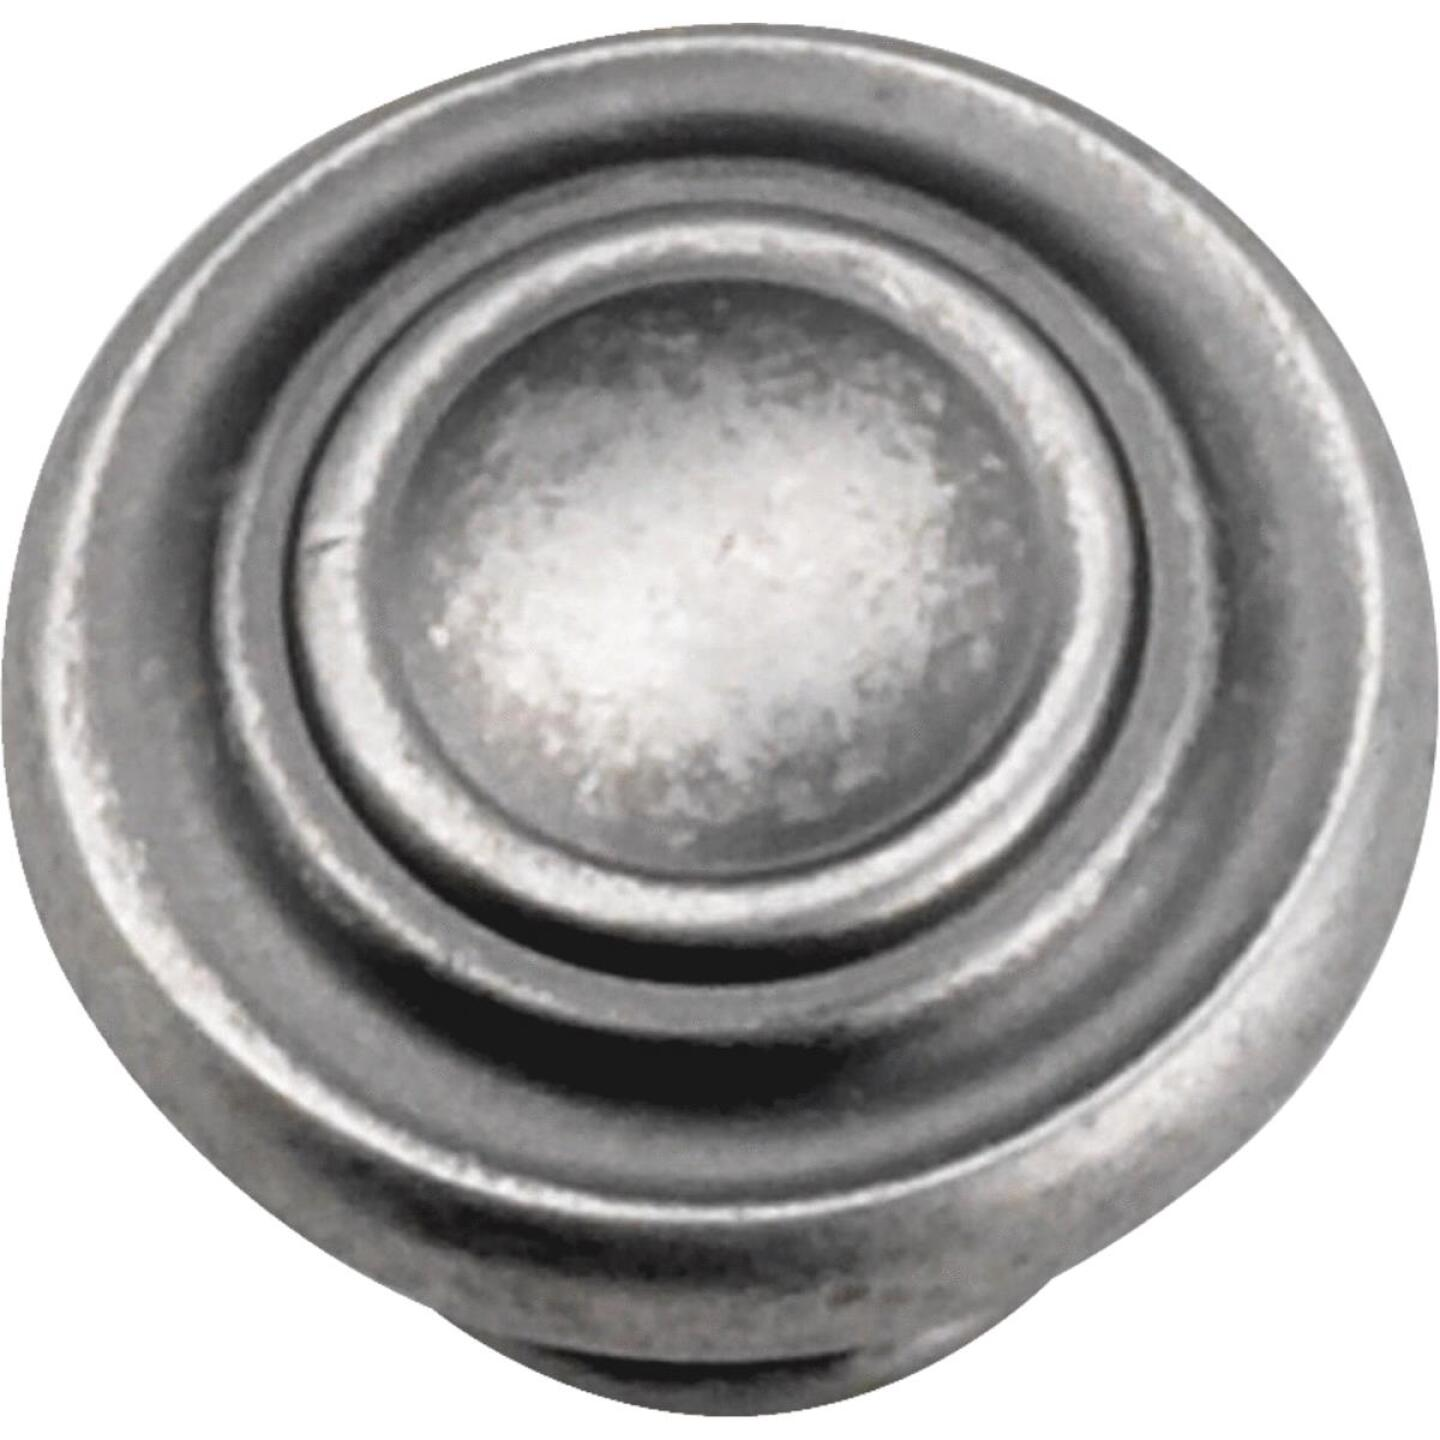 Laurey Windsor Antique Pewter 1-3/8 In. Cabinet Knob Image 1